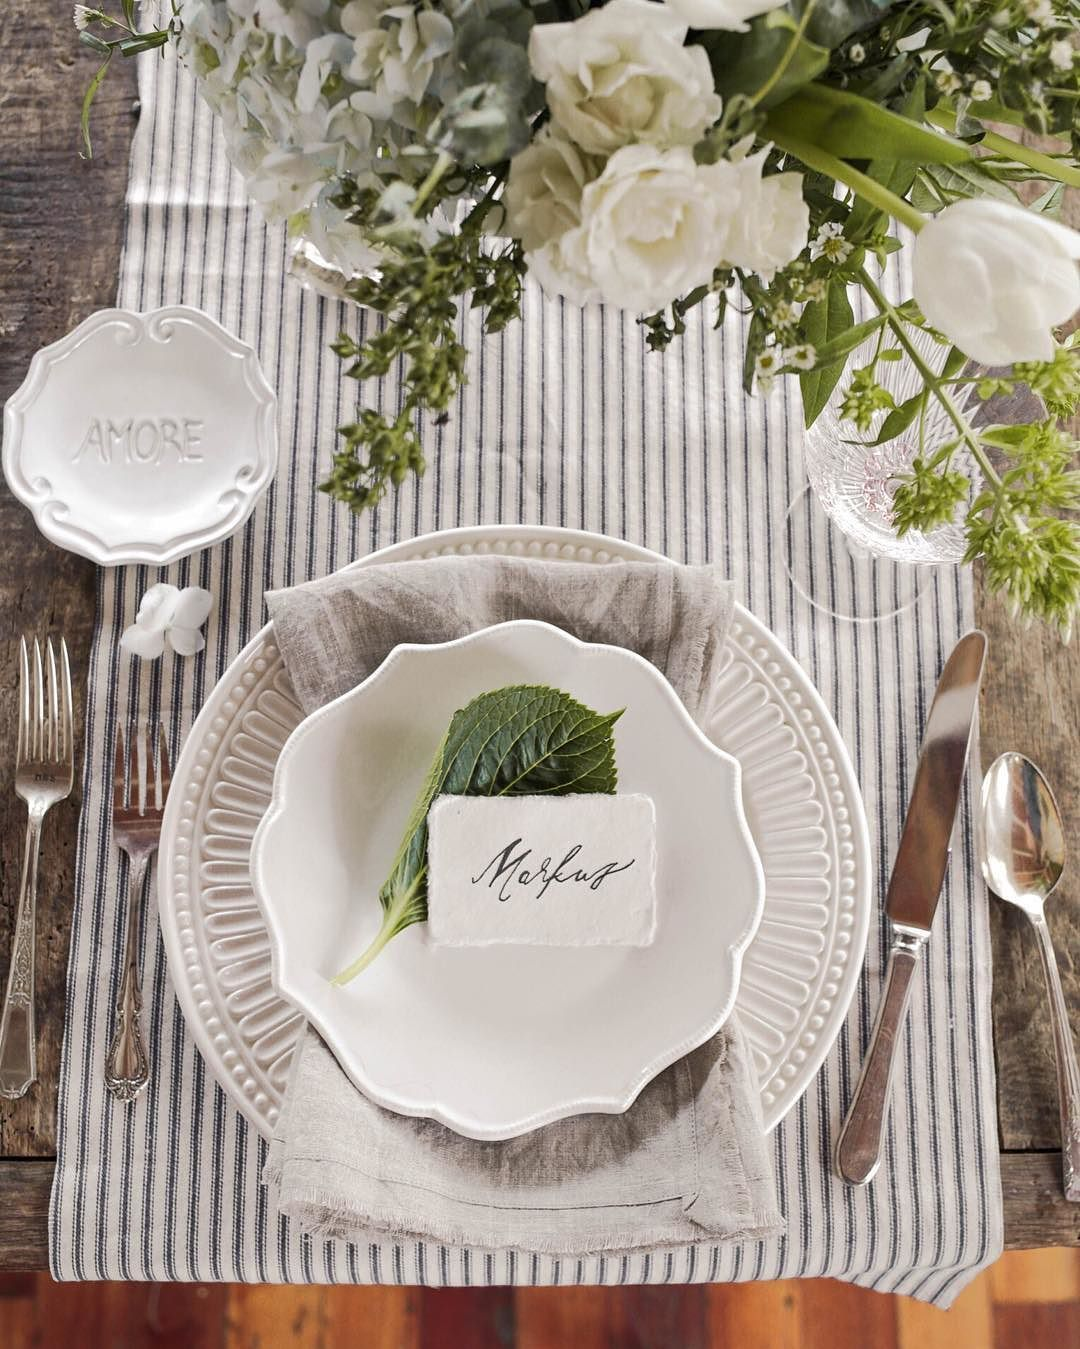 Wedding decorations and ideas december 2018 When it comes to designing your reception space less is more Steer